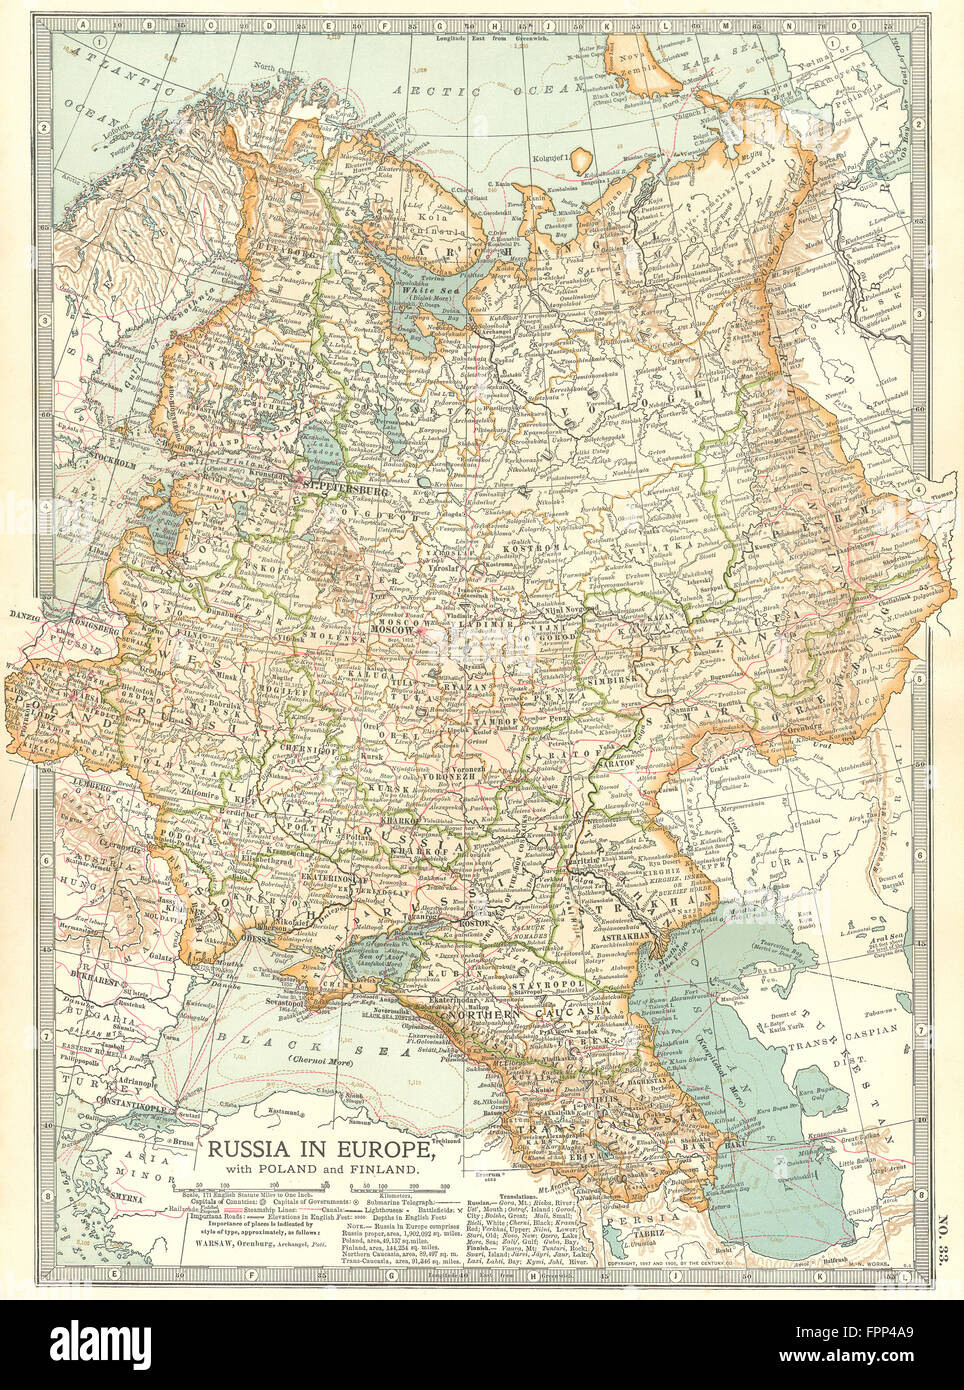 Russia in europe with poland finland caucasus georgia russia in europe with poland finland caucasus georgia ukraine 1903 map gumiabroncs Image collections